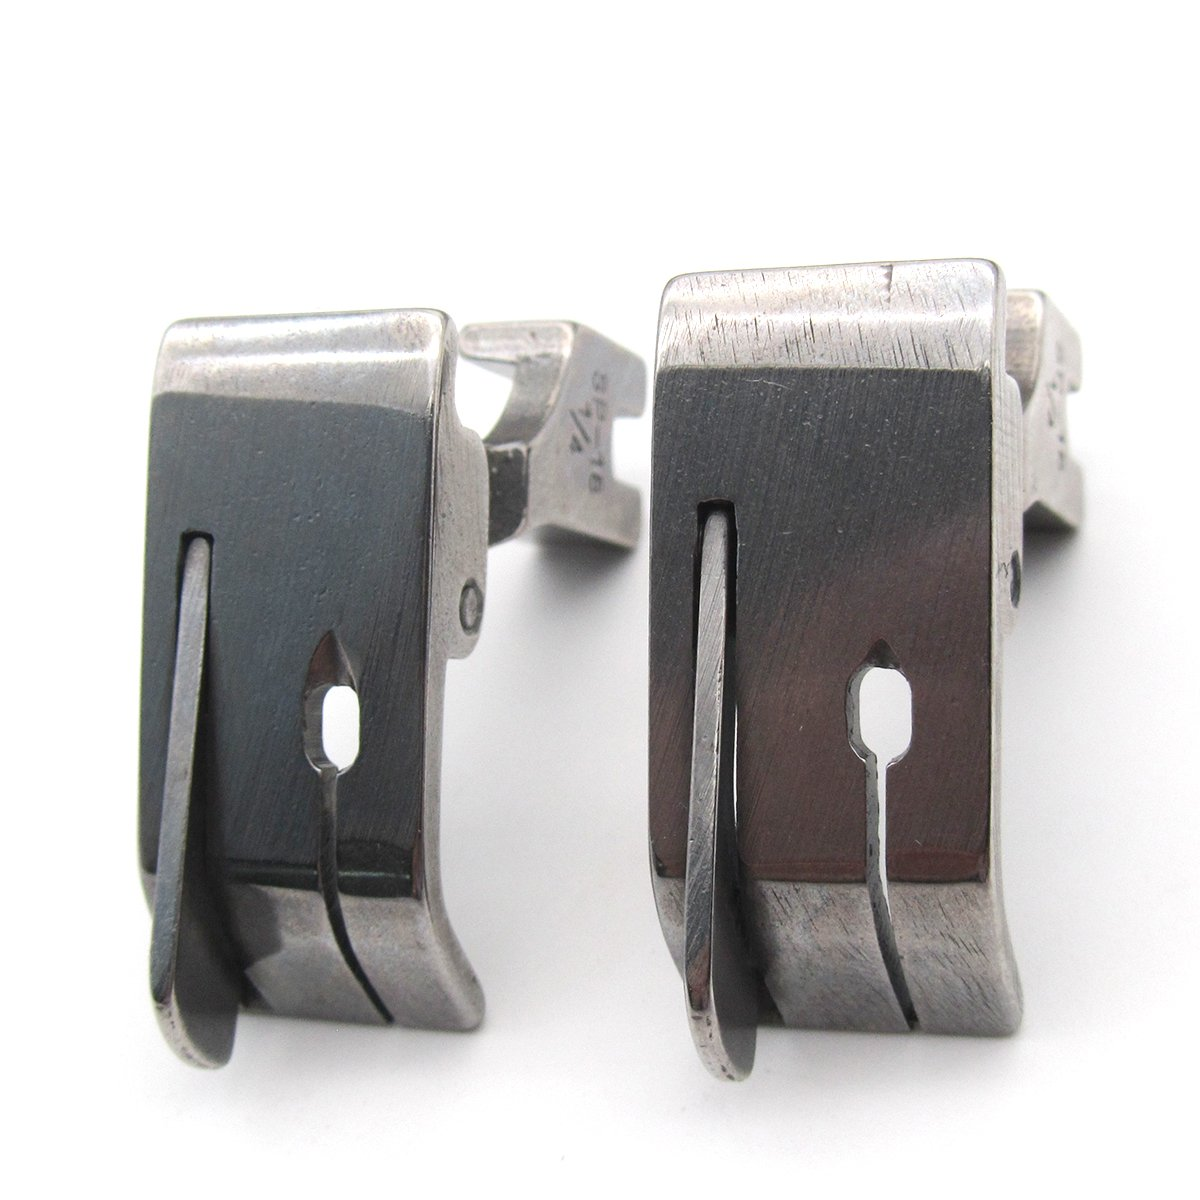 Industrial Sewing Machine Hinged Presser Foot with Right Guide #SP-18 1//8 2 PCS